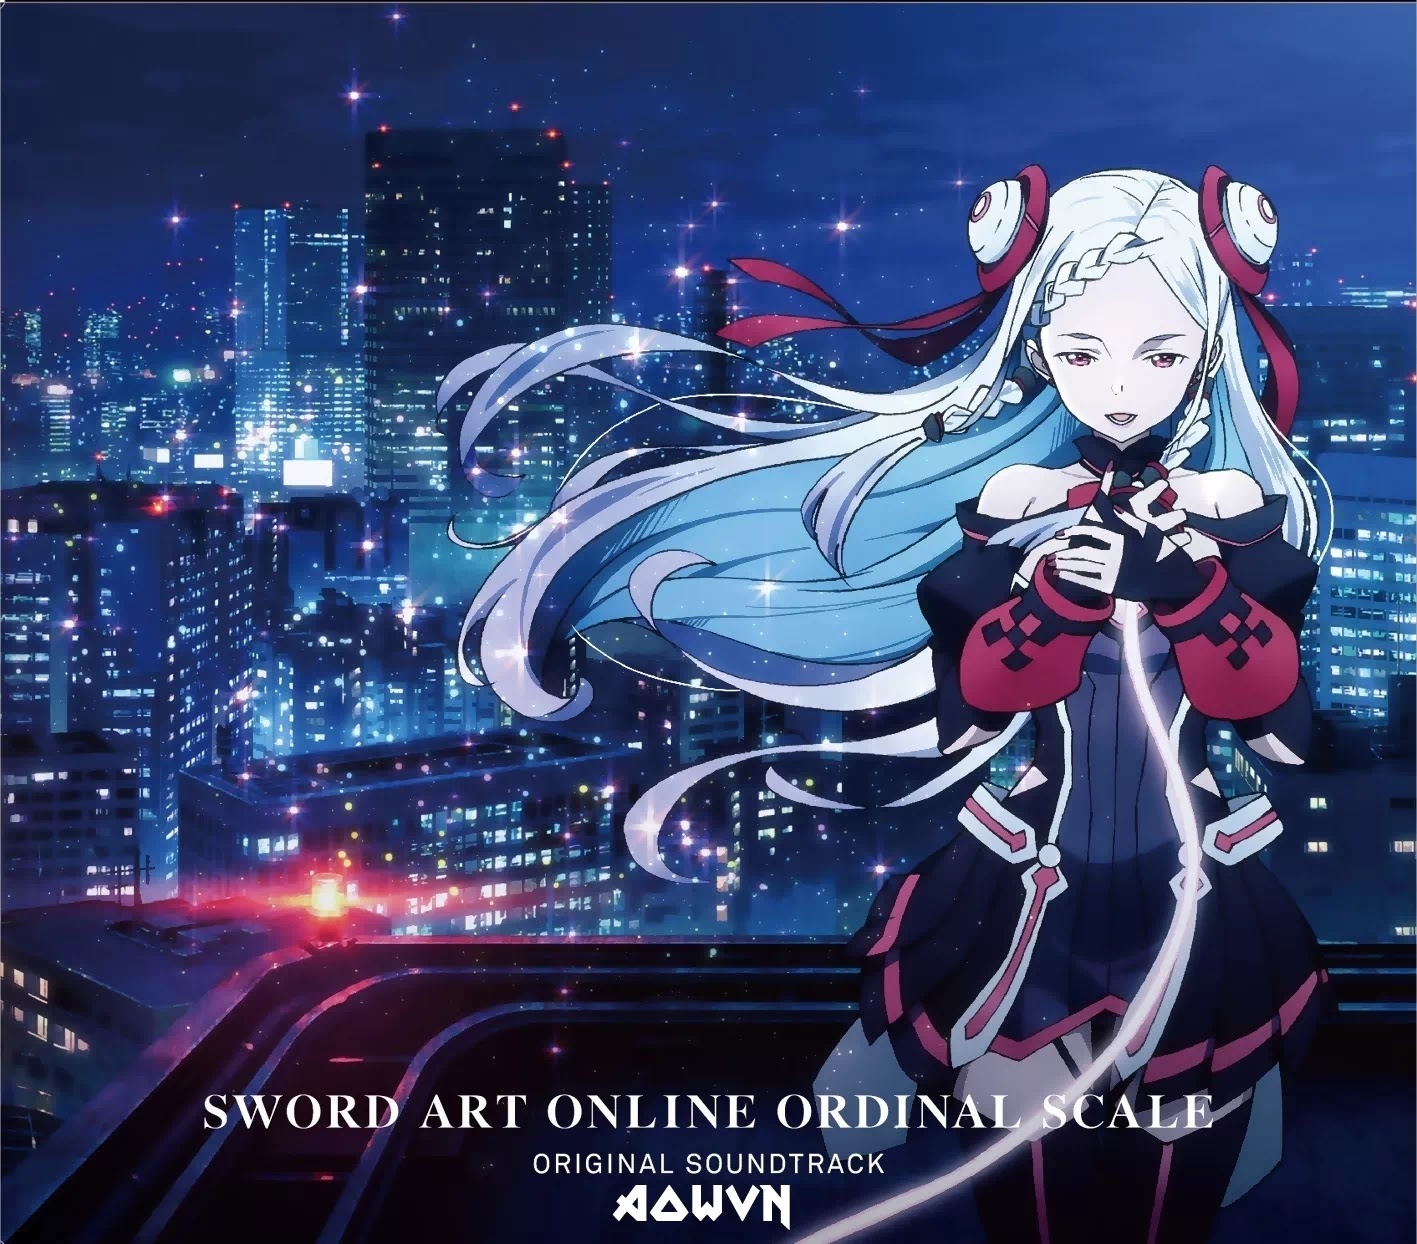 AowVN.org m - [ Nhạc Nhật ] Sword Art Online The Movie: Ordinal Scale OST 2017 | FLAC 24bit - Anime Songs